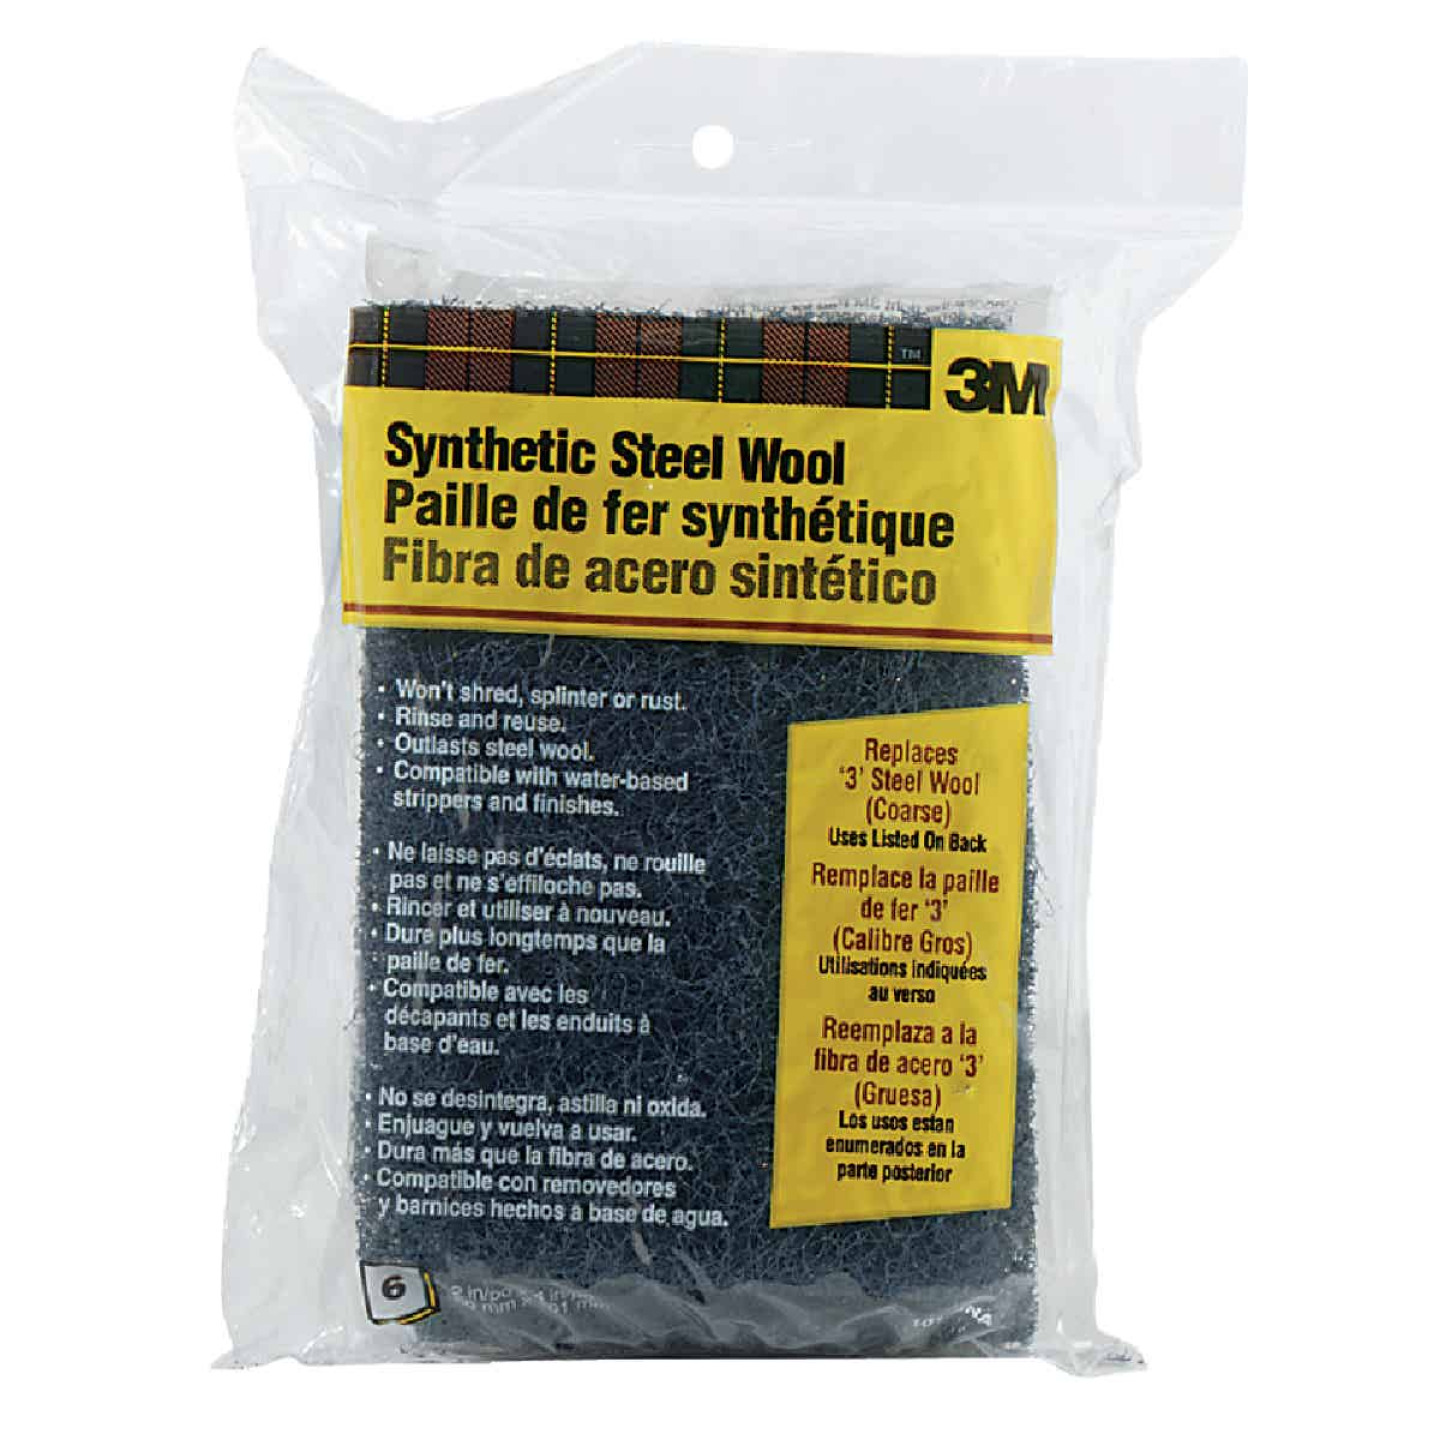 3M #3 Synthetic Steel Wool (6 Pack) Image 1